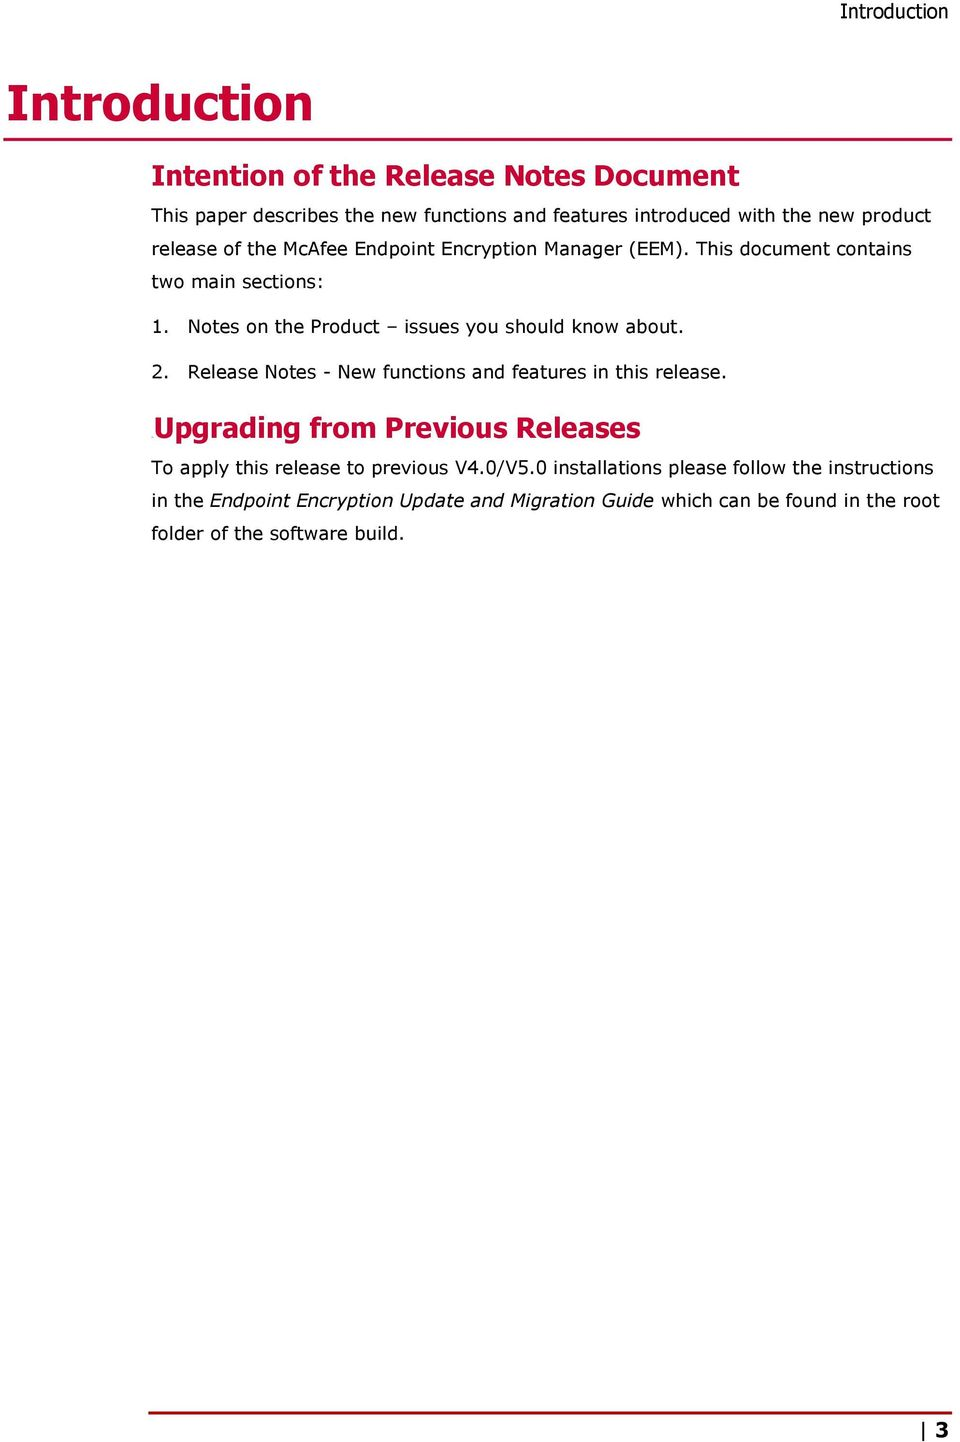 2. Release Notes - New functions and features in this release. 8BUpgrading from Previous Releases To apply this release to previous V4.0/V5.